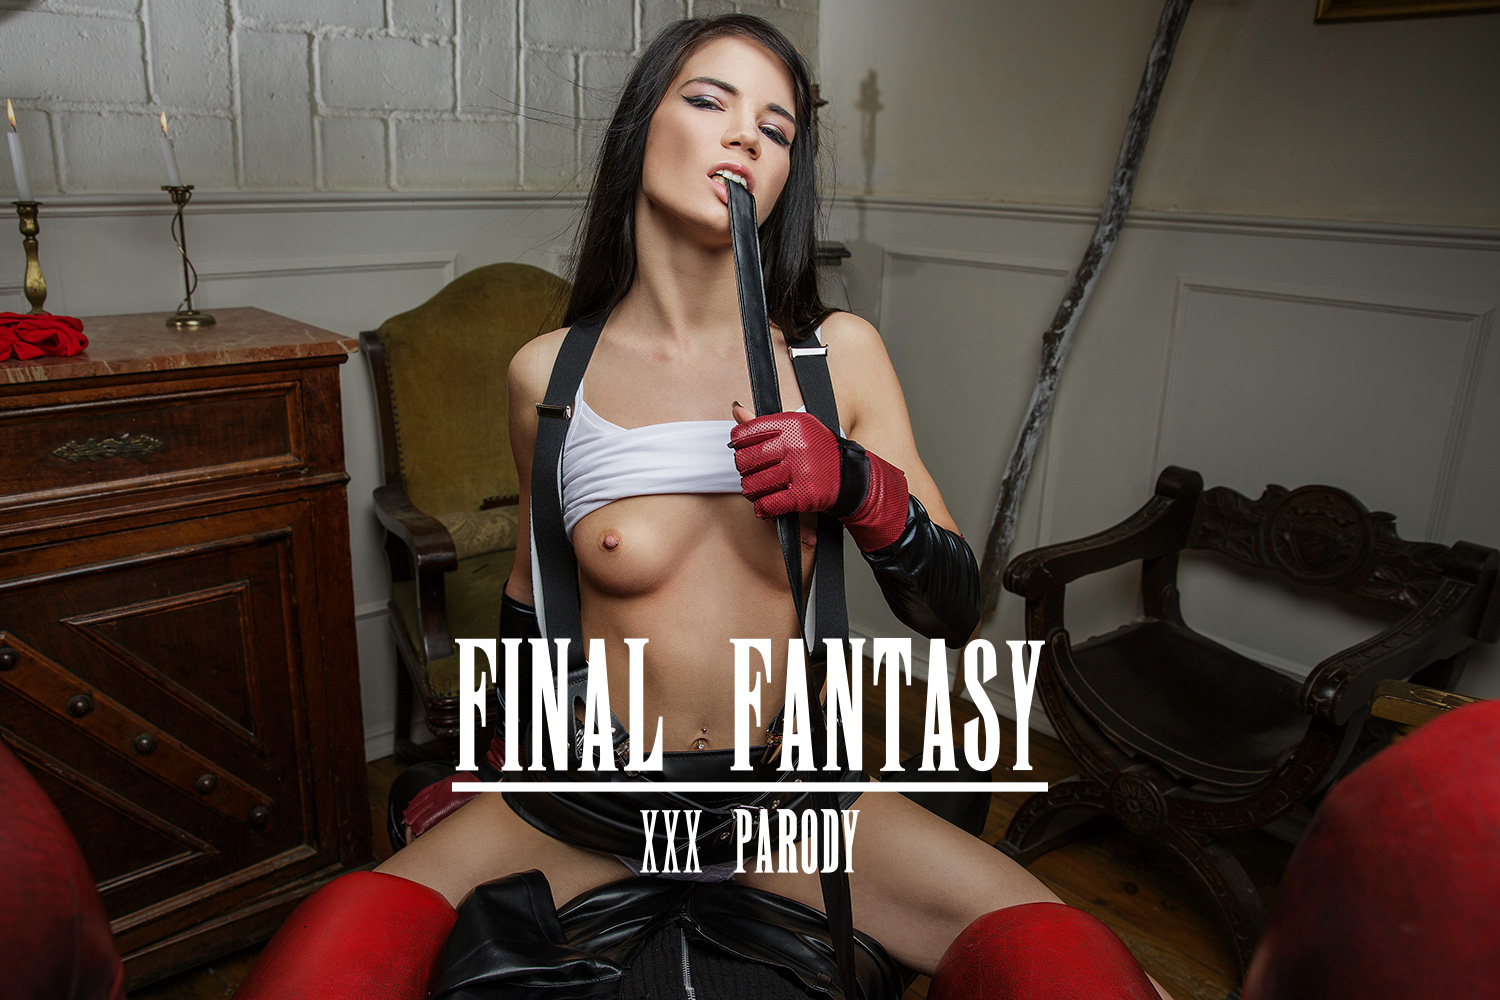 pov nude Final fantasy girls